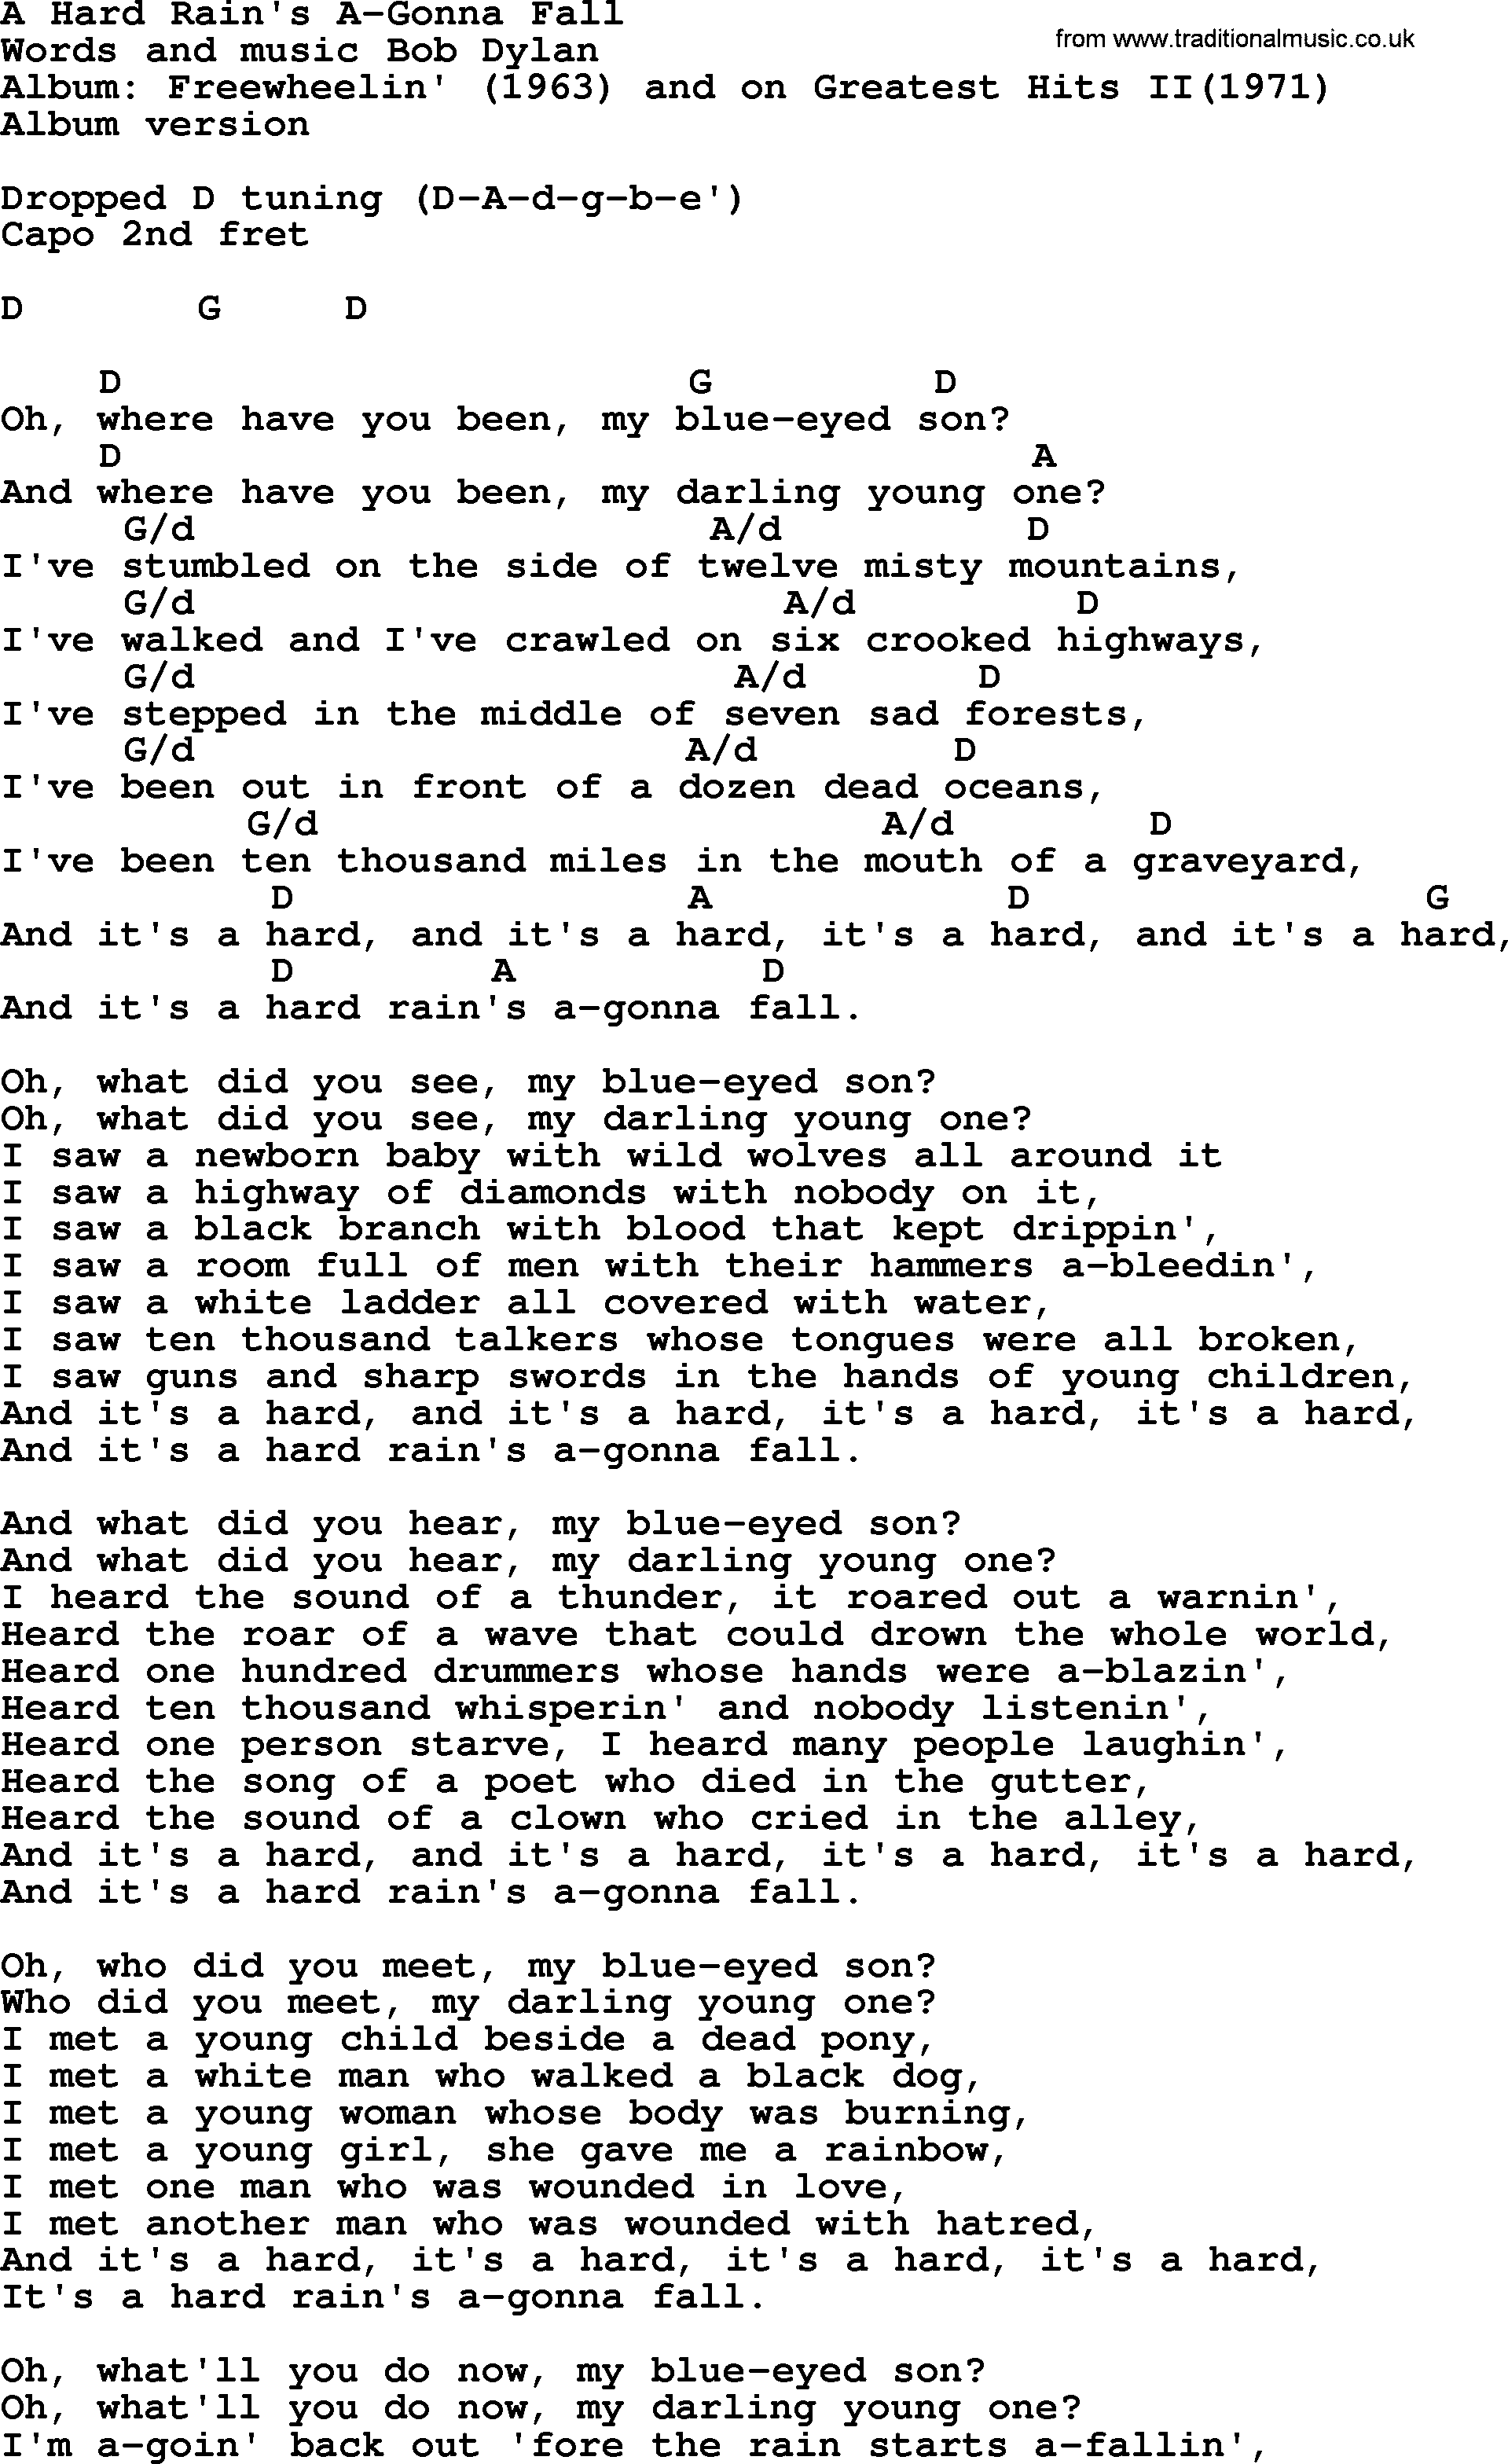 Bob dylan song a hard rains a gonna fall lyrics and chords bob dylan song lyrics with chords a hard rains a gonna fall hexwebz Choice Image